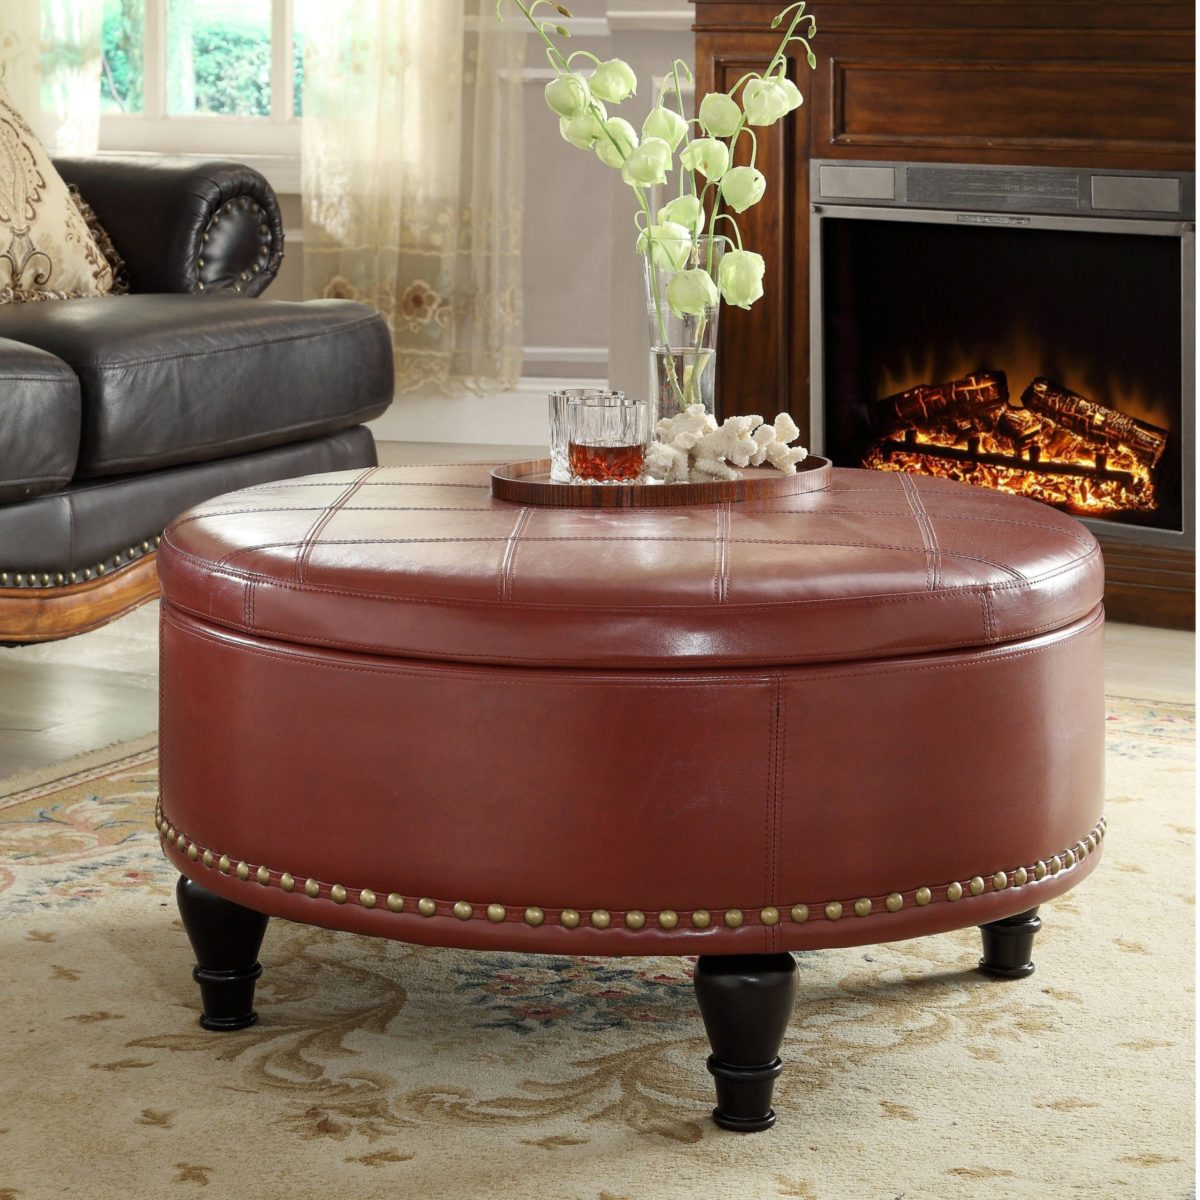 leather ottoman,Get your home furniture including, Sofa, Bed, Sectional Sofa, Wardrobe, night stand, couches, dressing table Ottoman, Living Room Furniture.Sectional sofa, dubai furniture,furniture store near me, online furniture store, home furniture, best furniture in dubai, accent chair, armless chair, online furniture store in dubai, office furniture